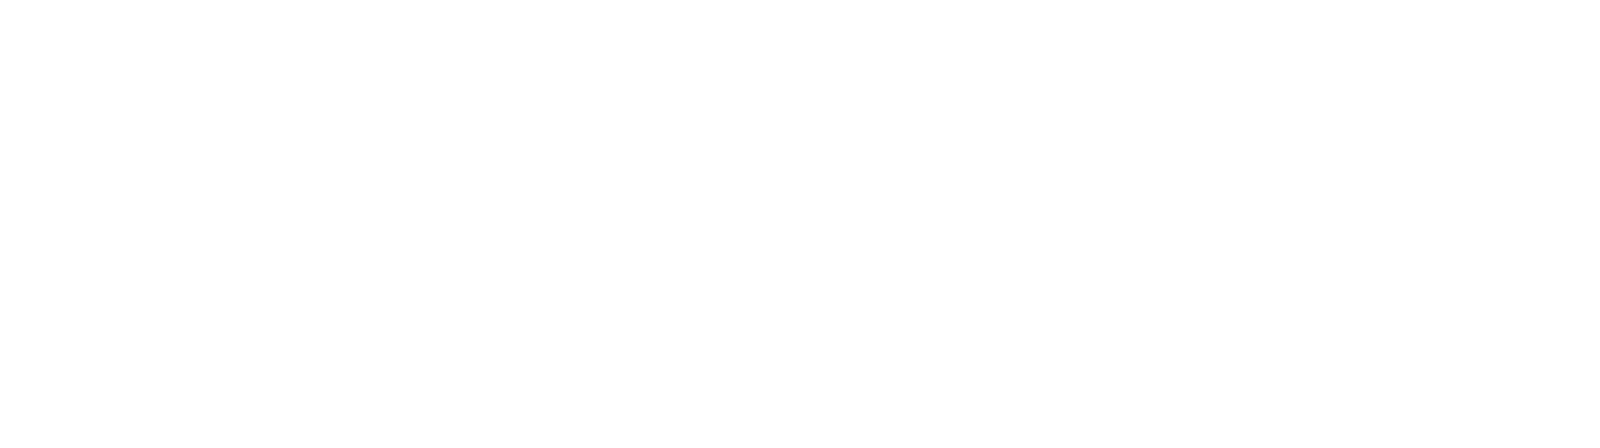 "Mayday ""Just Rock It 2015 TOKYO"" at Nippon Budokan"